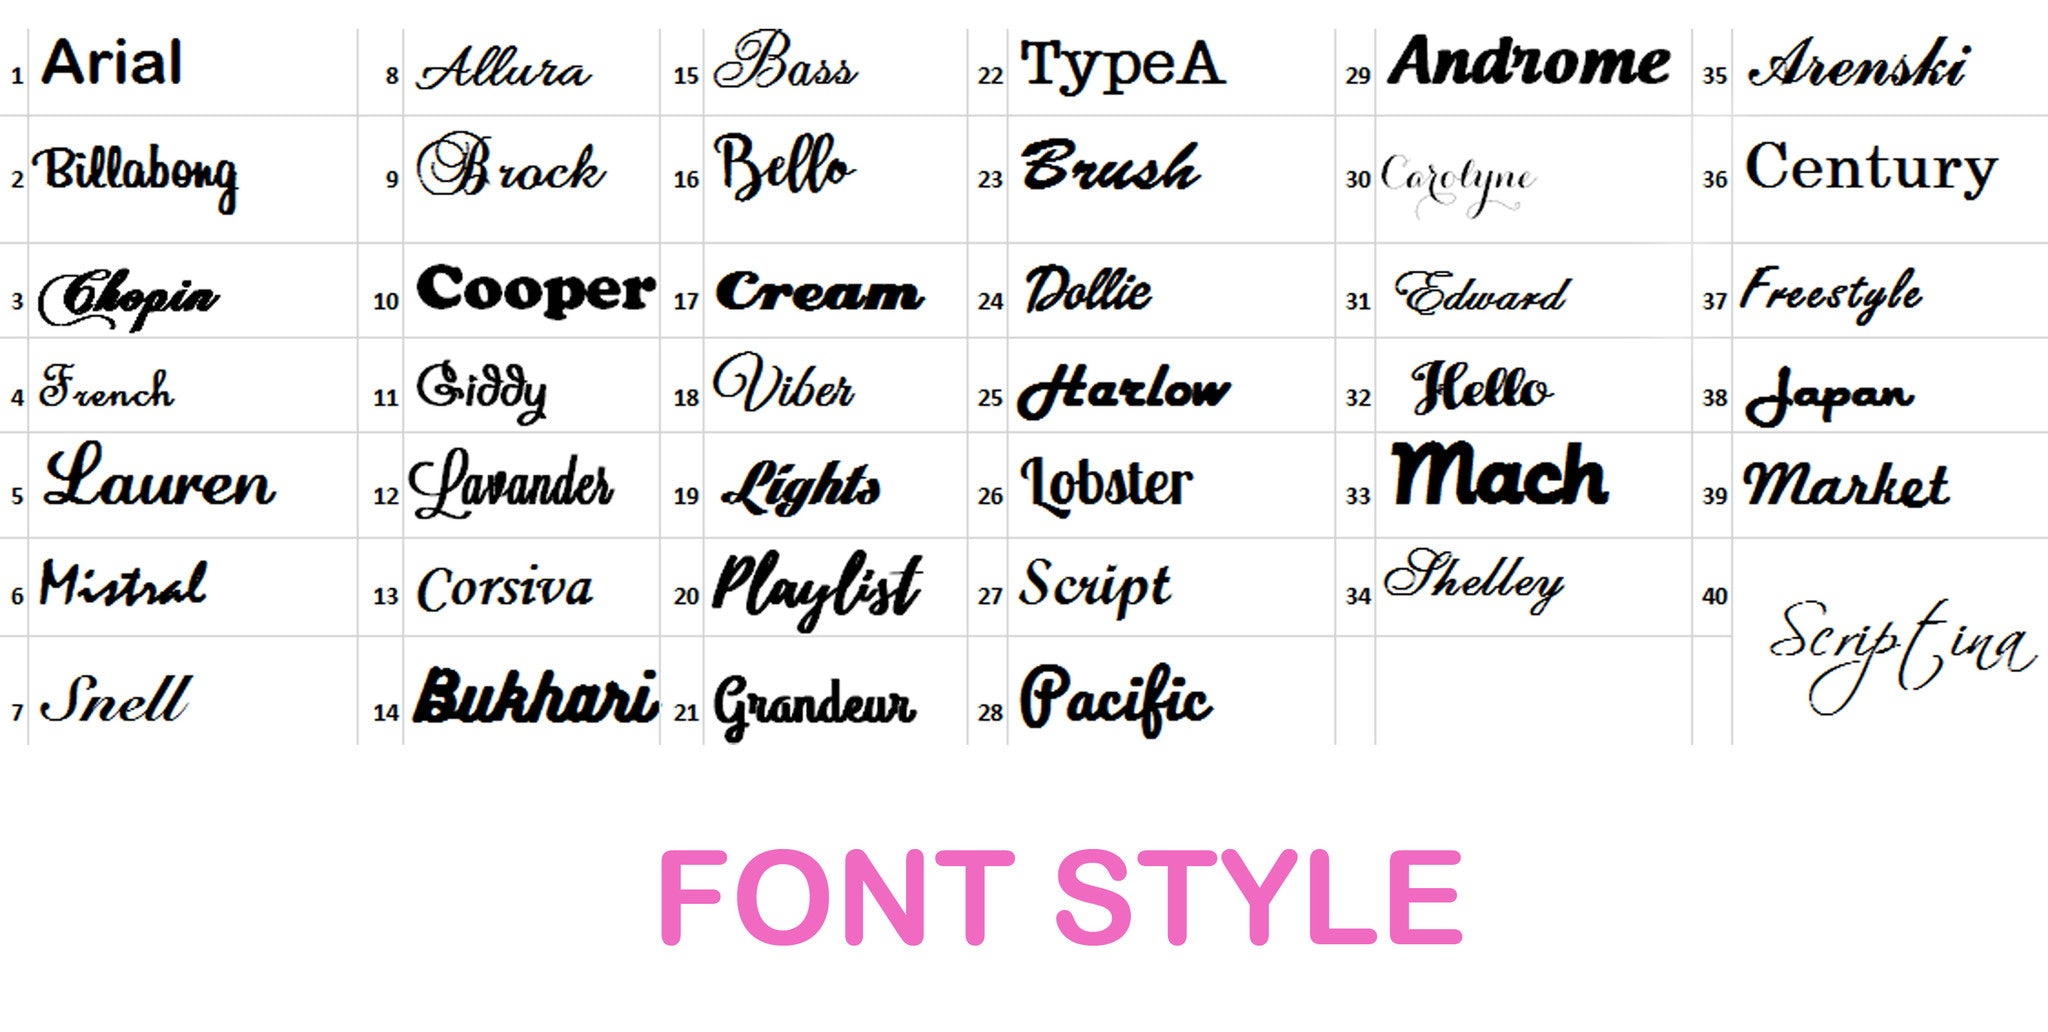 Want To See How Your Name Looks With Our Available Fonts Feel Free Contact Us So We Can Email Draft